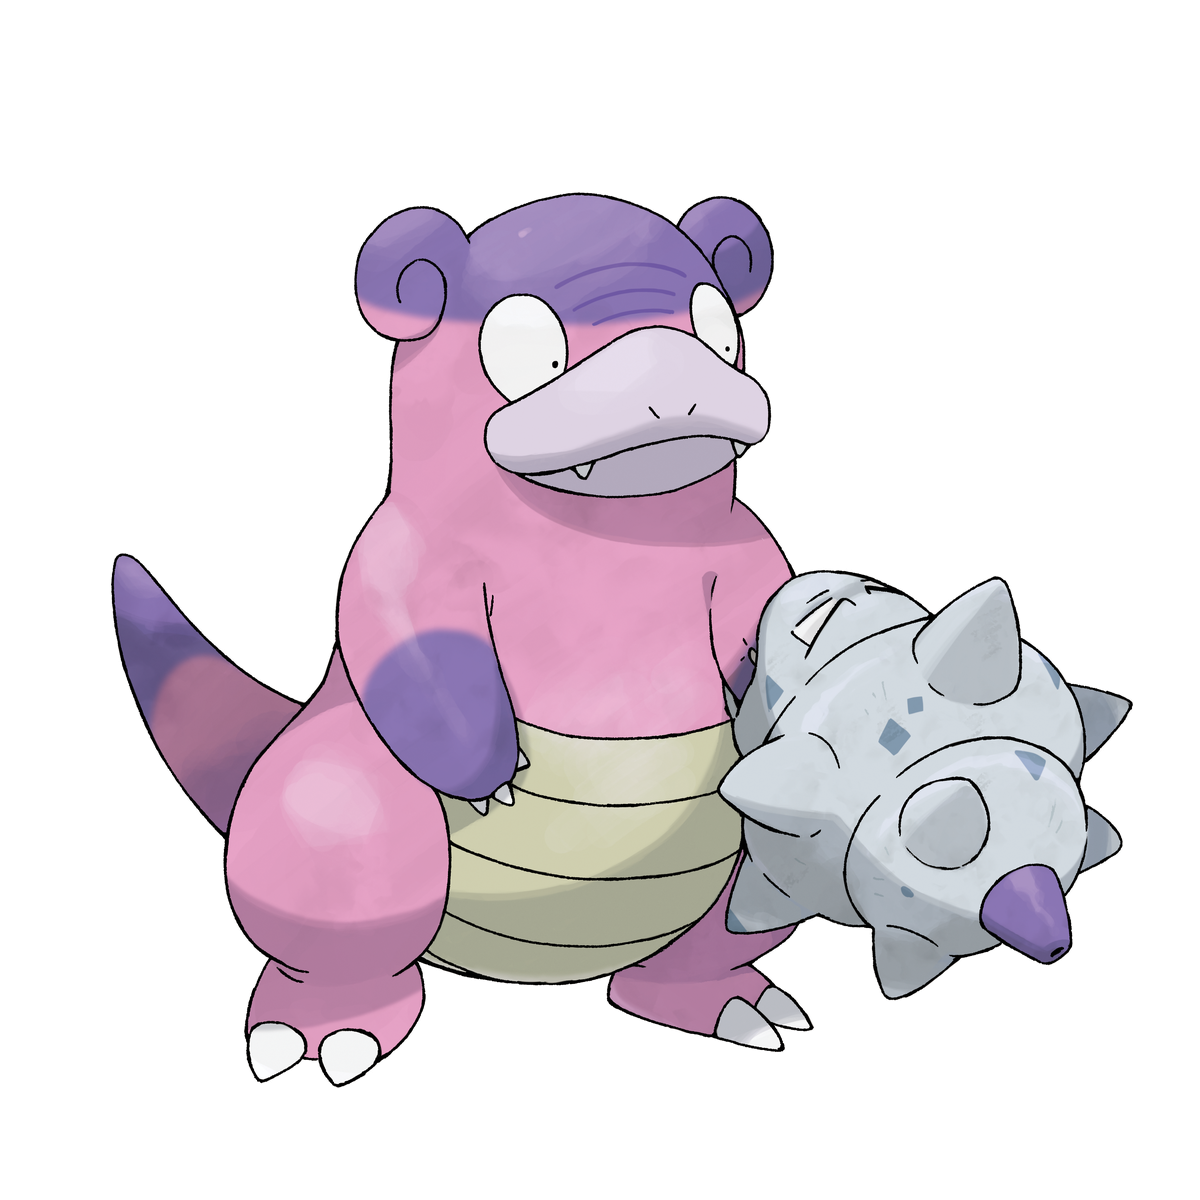 A pink dinosaur-like creature with a shell wrapped around its arm